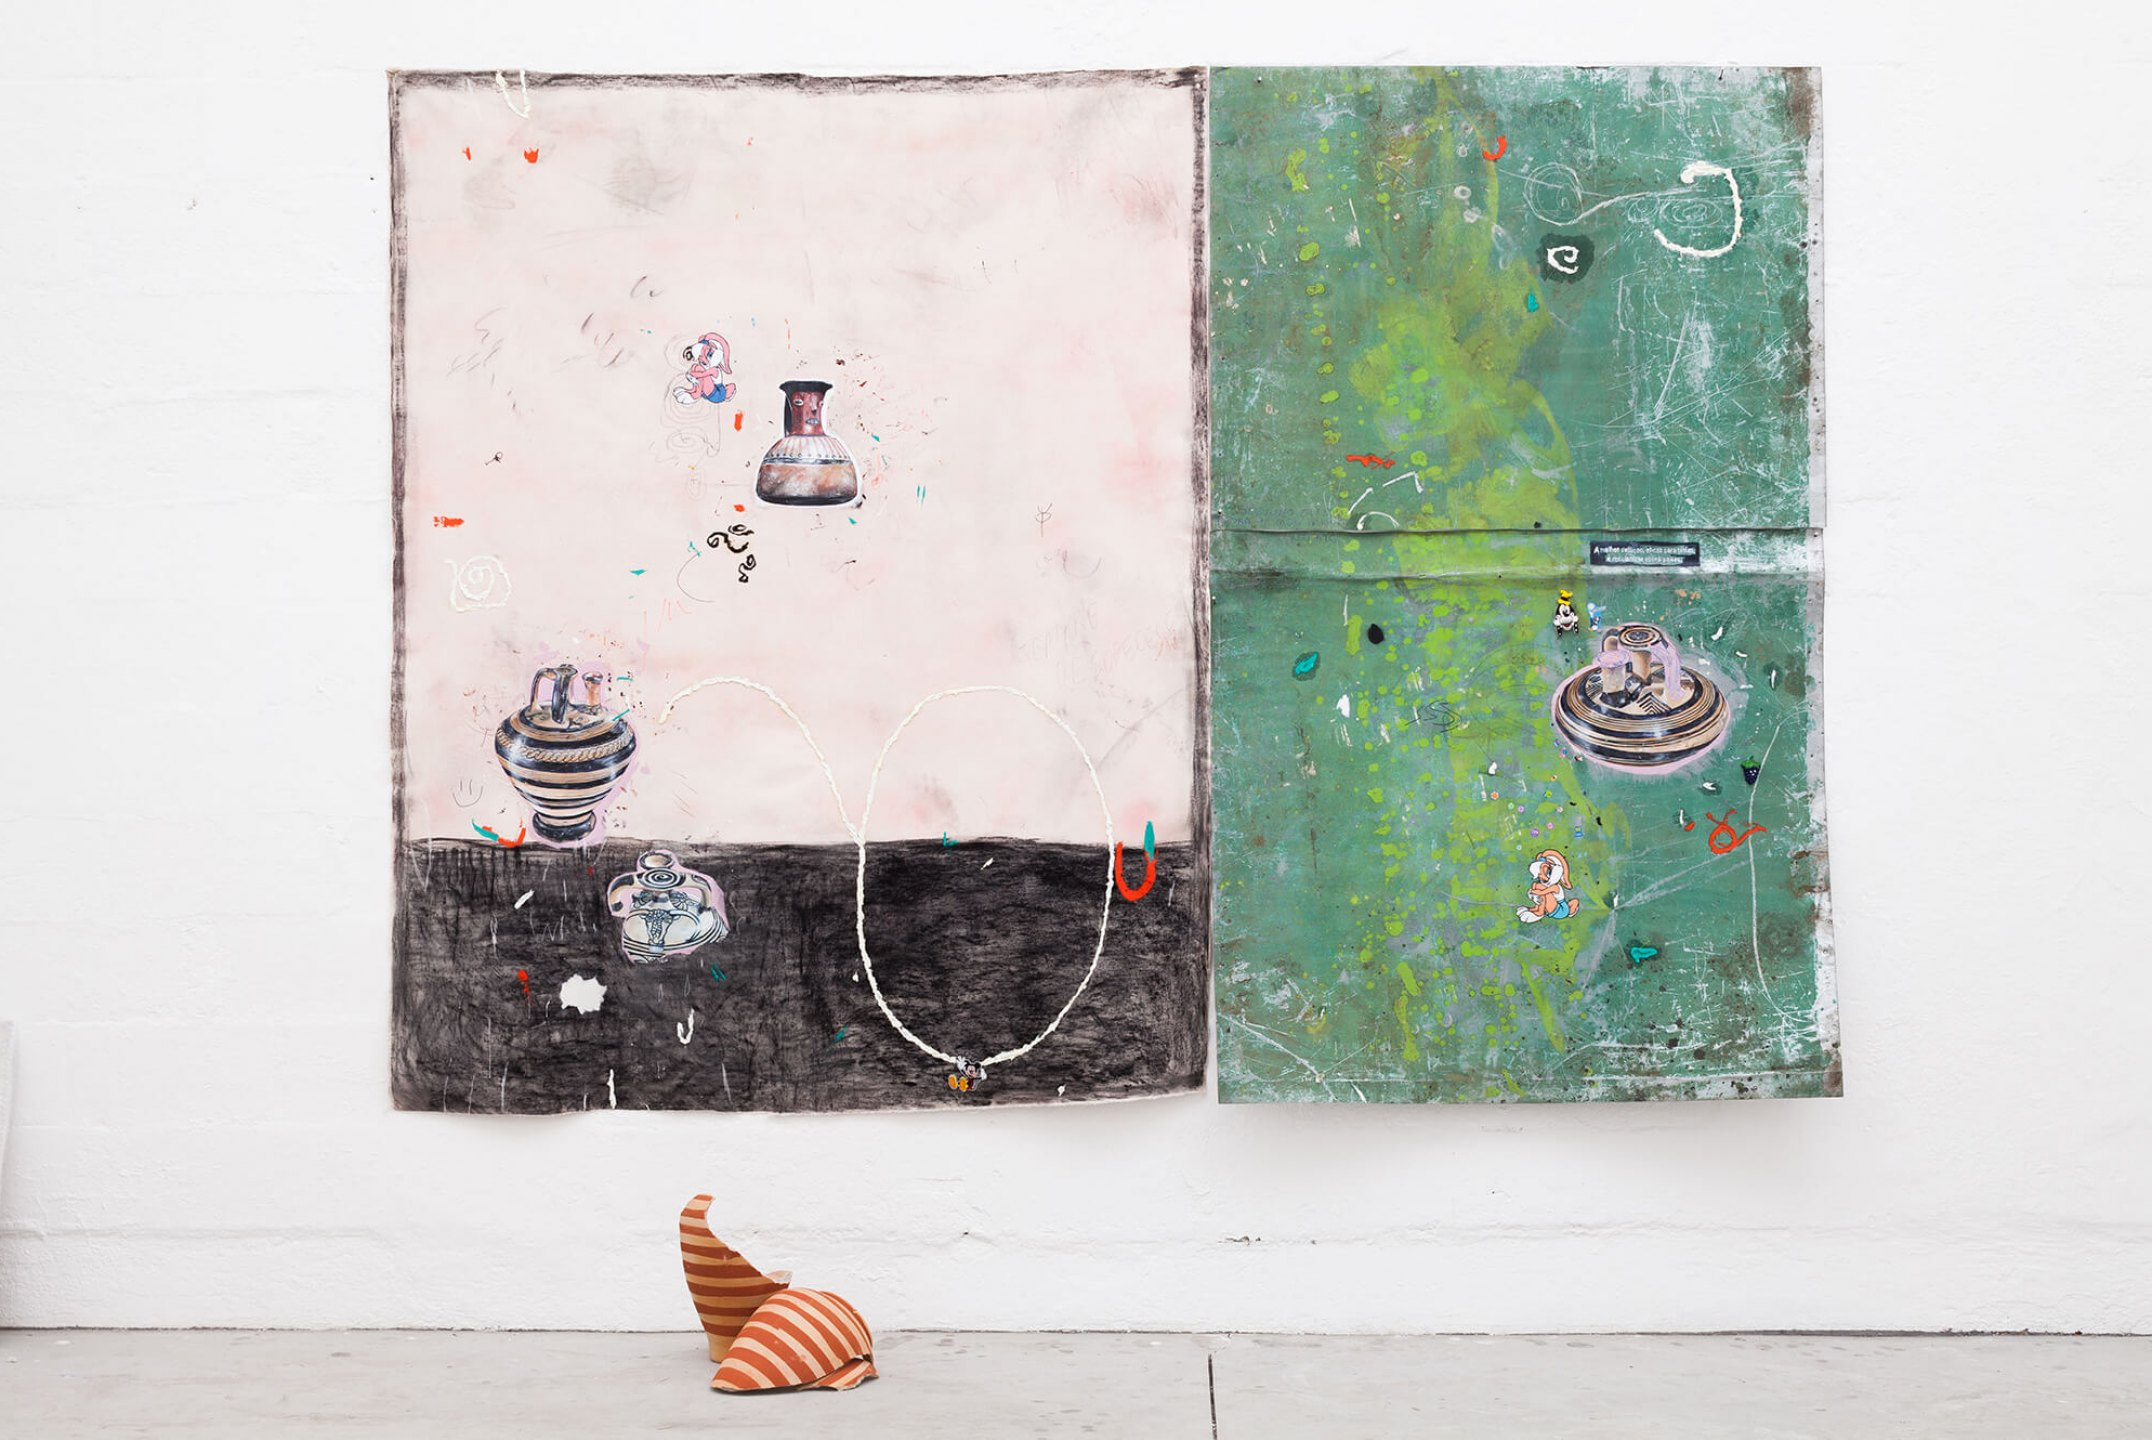 Paulo Nimer Pjota, <em>Dialogue between arrangements, constellations and time, geometric motifs and ancient empires #3,</em> 2015, mixed media on canvas and aluminum, ceramic, 200 × 276 cm - Mendes Wood DM